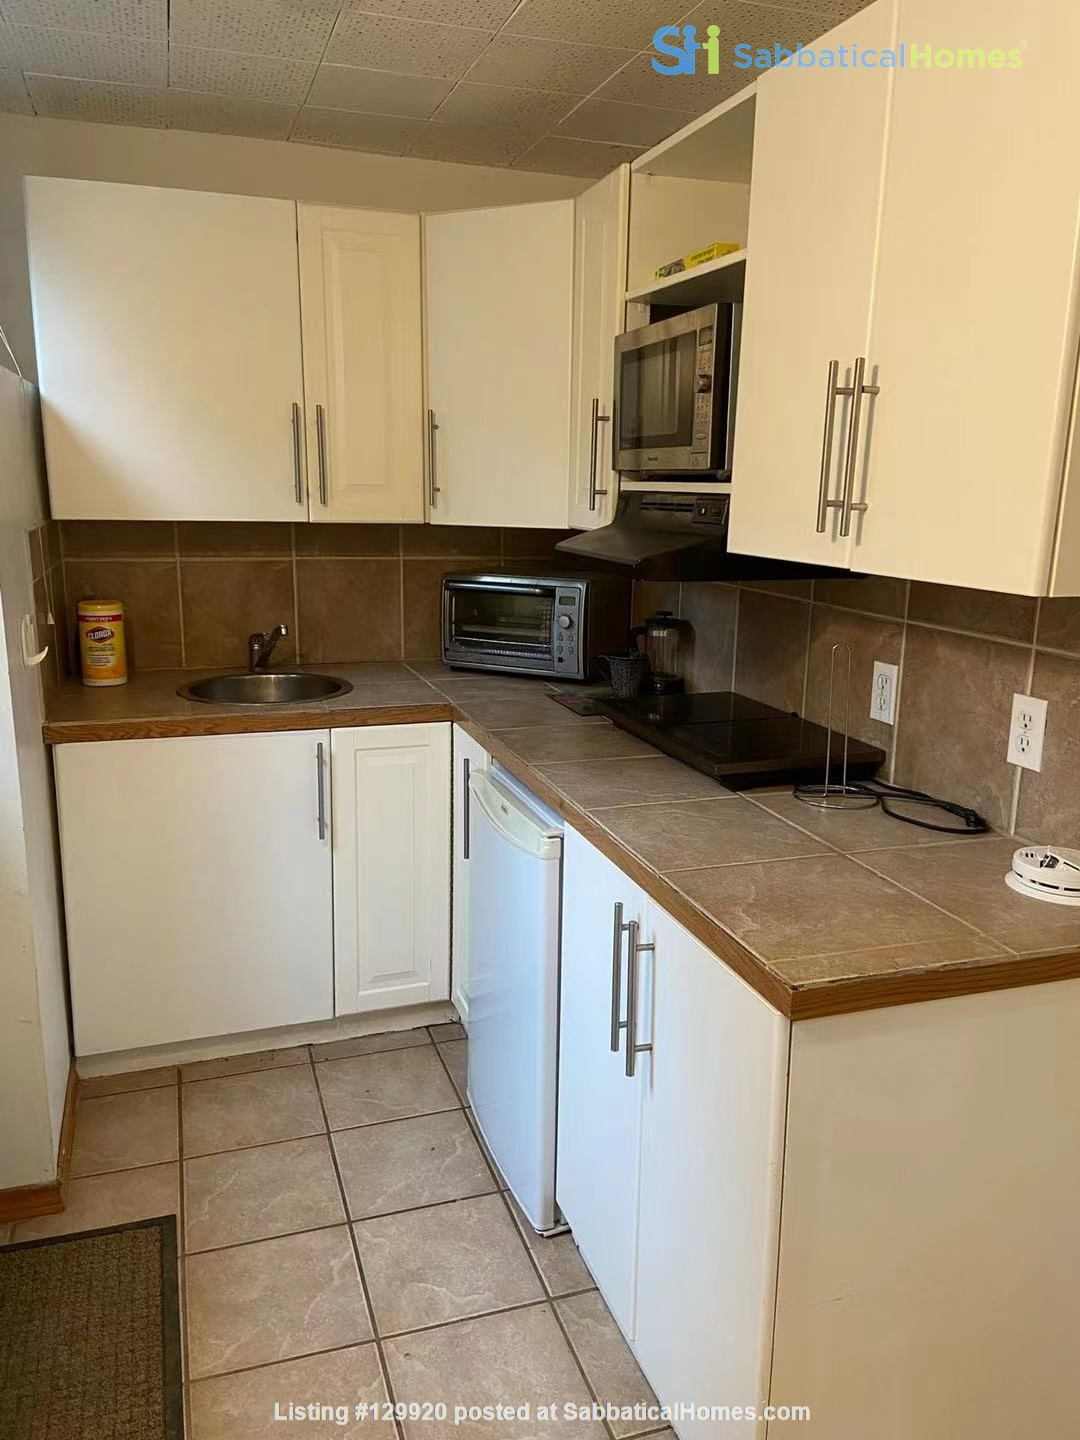 Walkout basement suite on UoA campus for short term daily rental ($50/day) Home Rental in Edmonton, Alberta, Canada 2